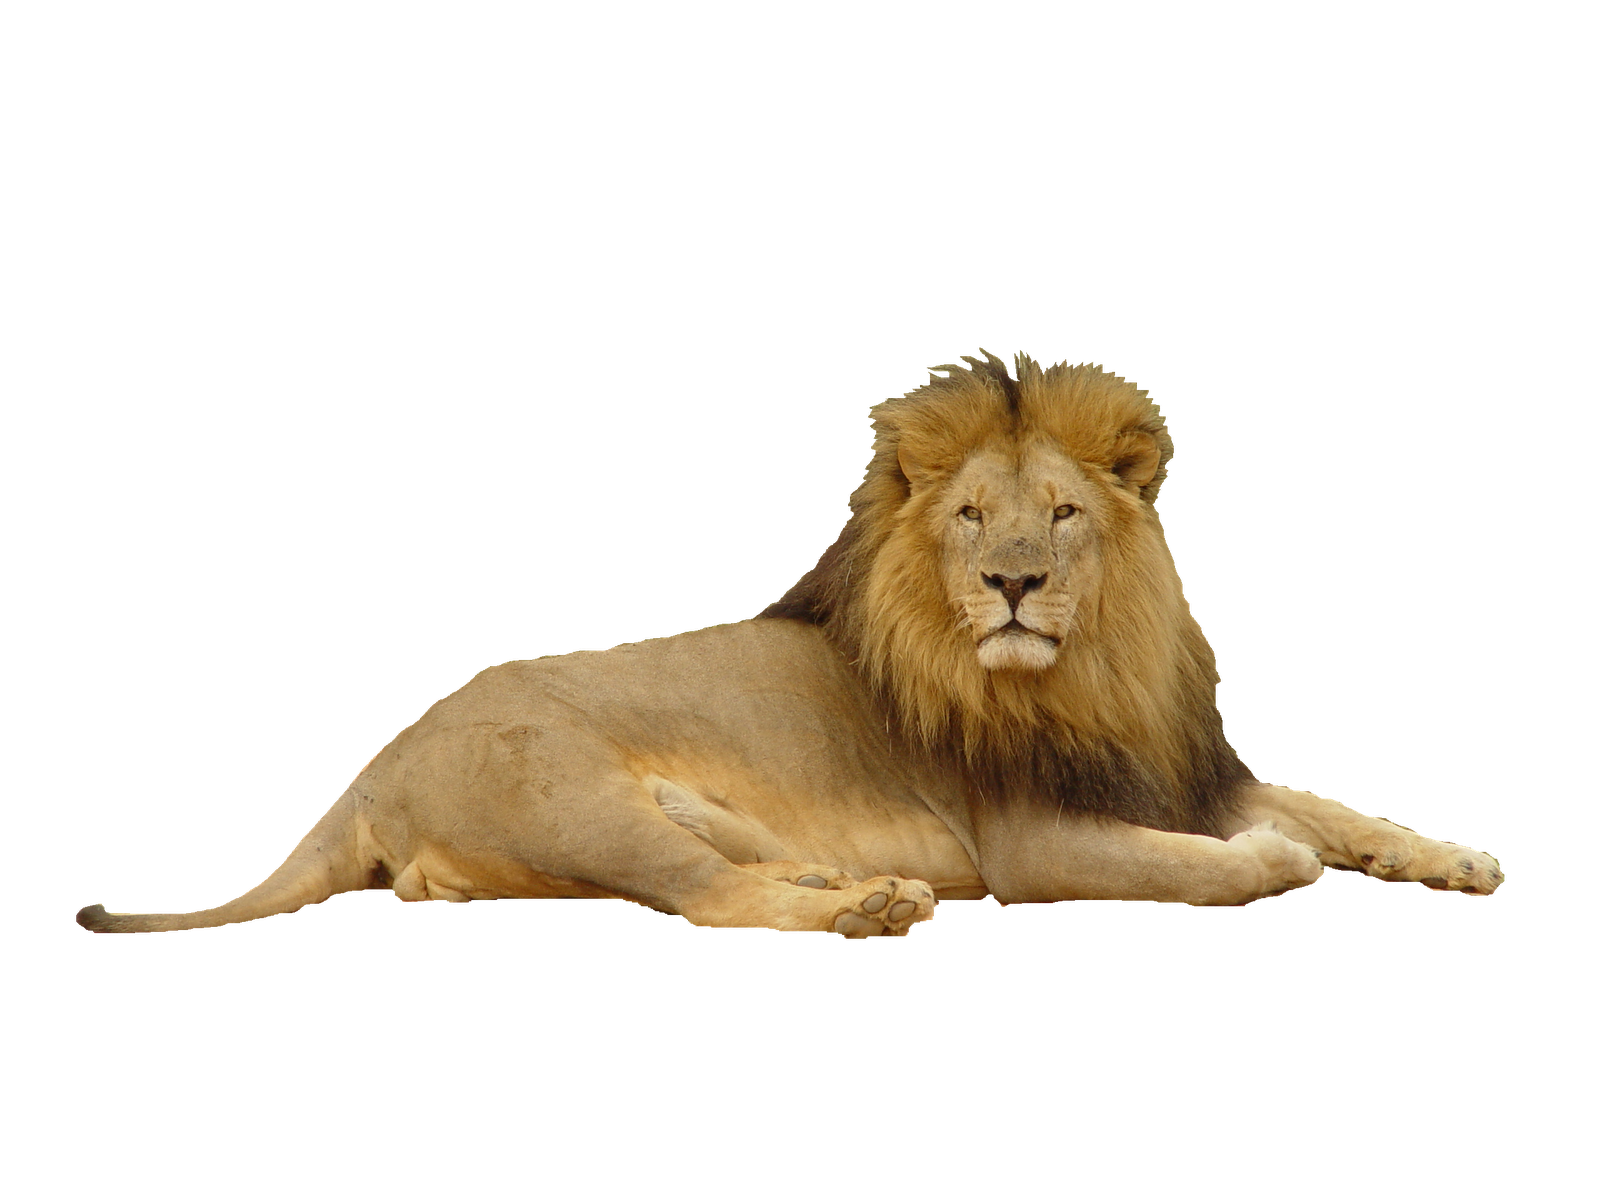 lion png photoscape editor manipulation friends king jungle #11217